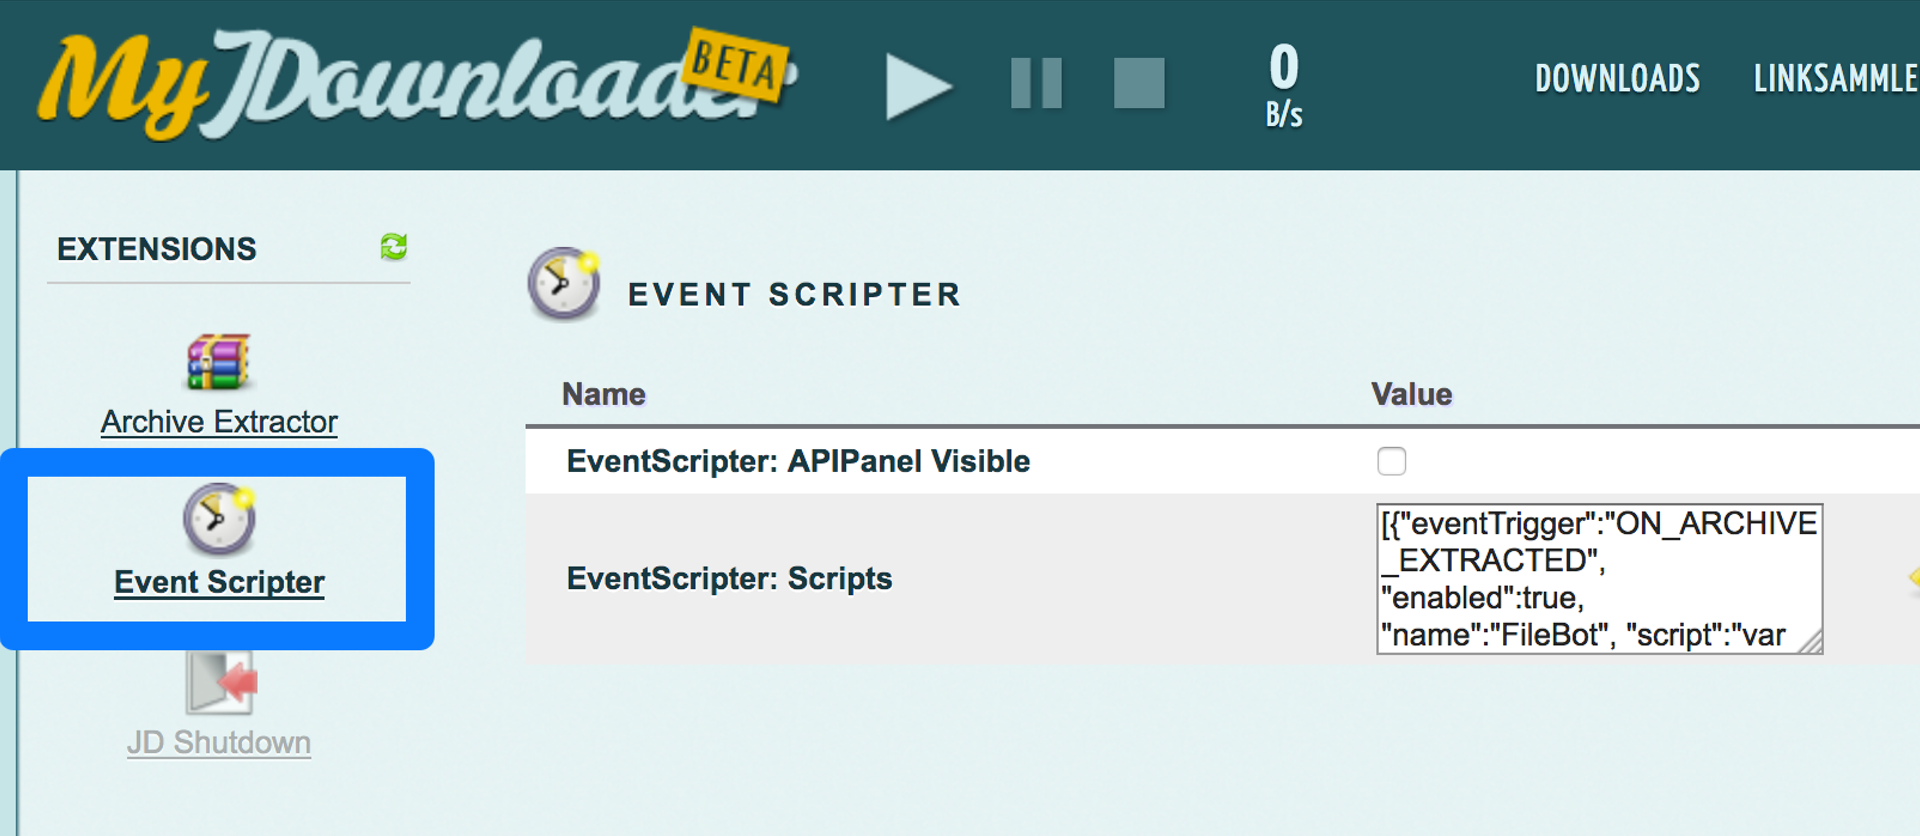 Der Event Scripter unter my.JDownloader in den Einstellungen